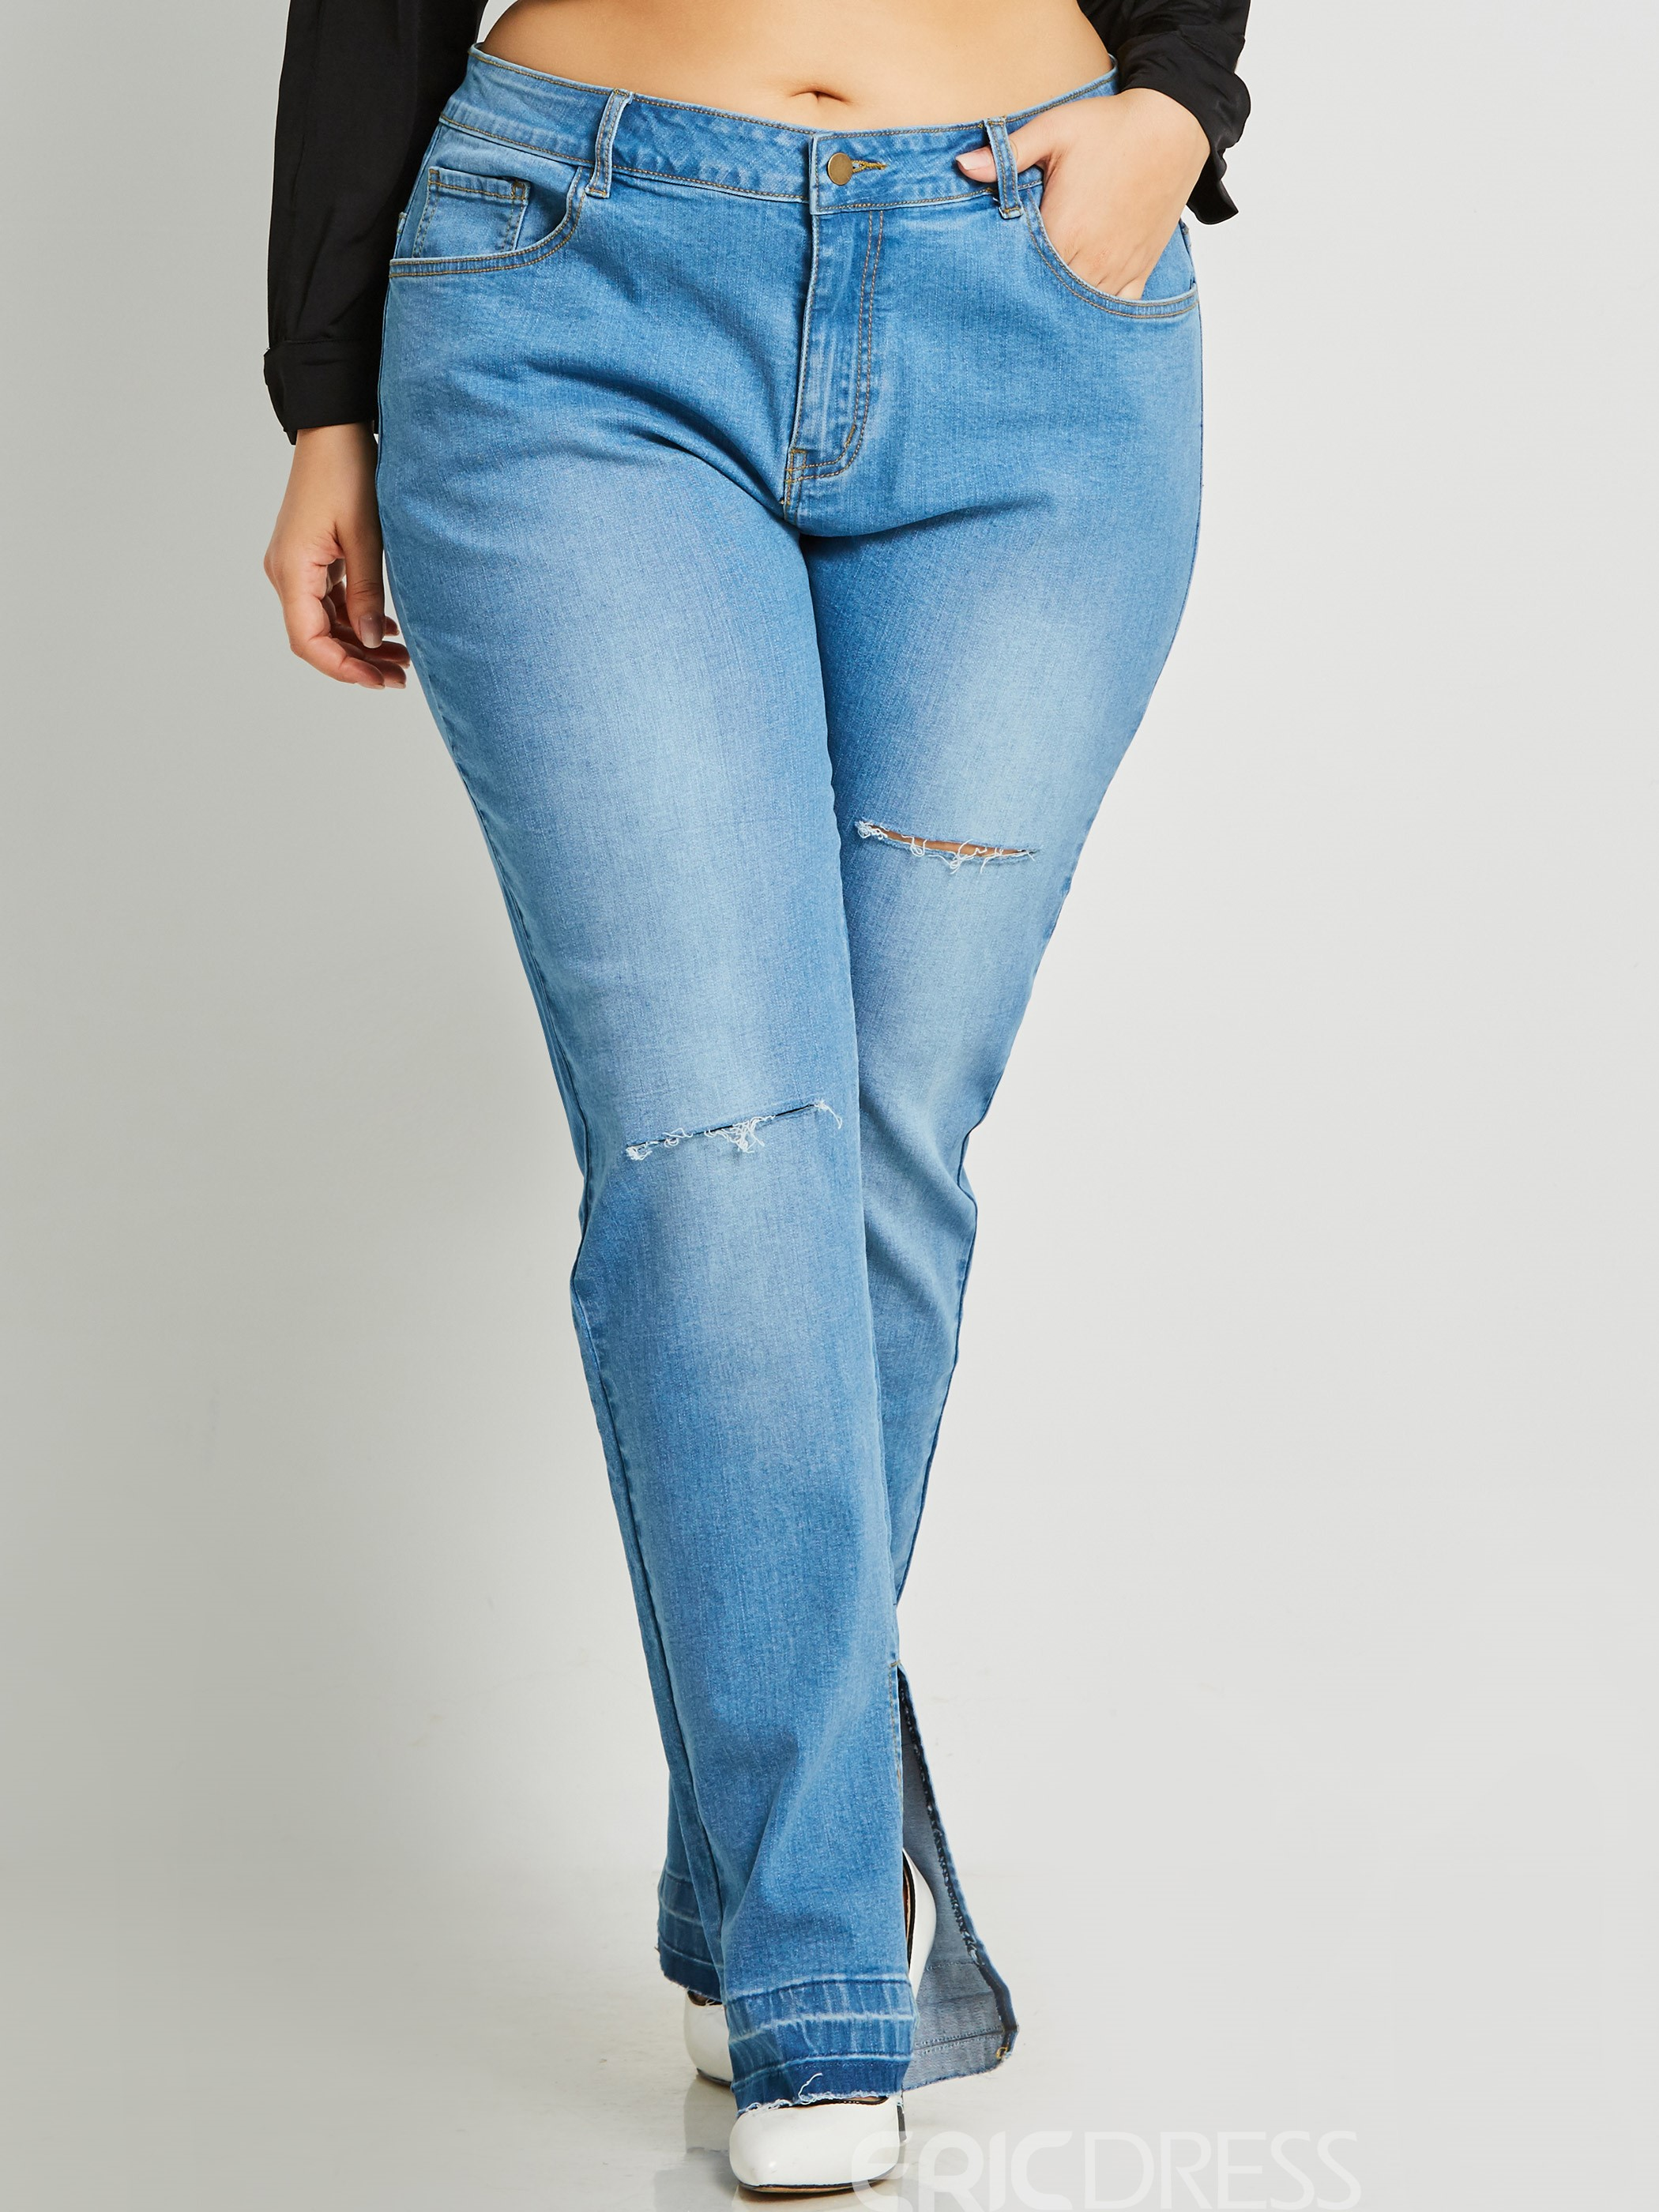 ericdress Denim Schlitz Damen Jeans